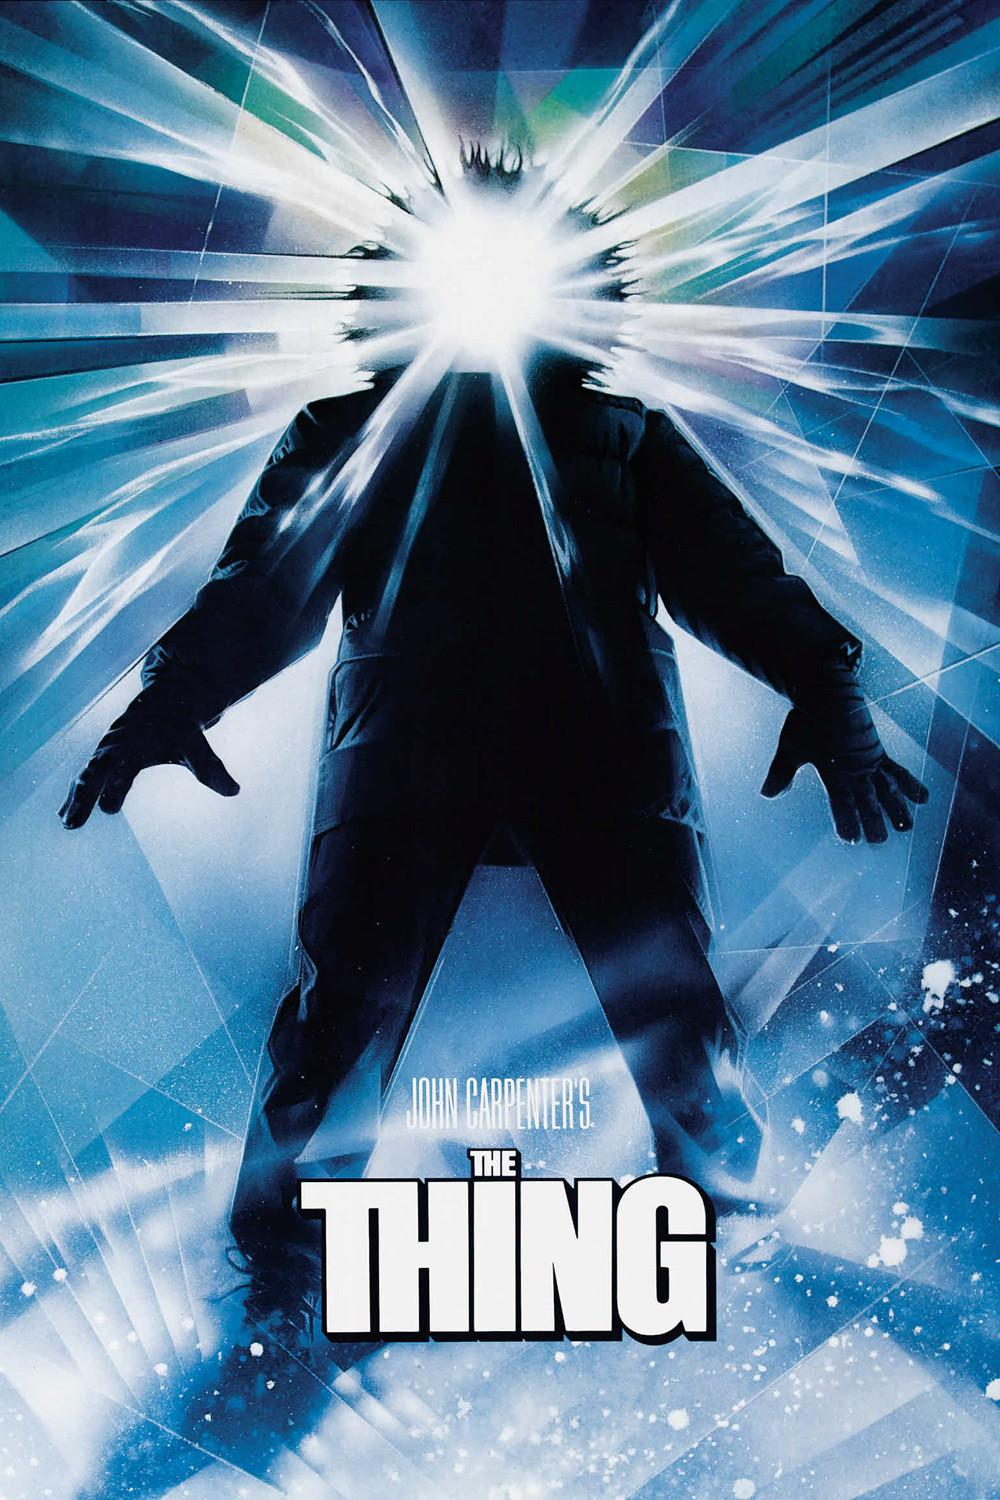 the thing carpenter post - This Week in Horror Movie History - The Thing (1982)